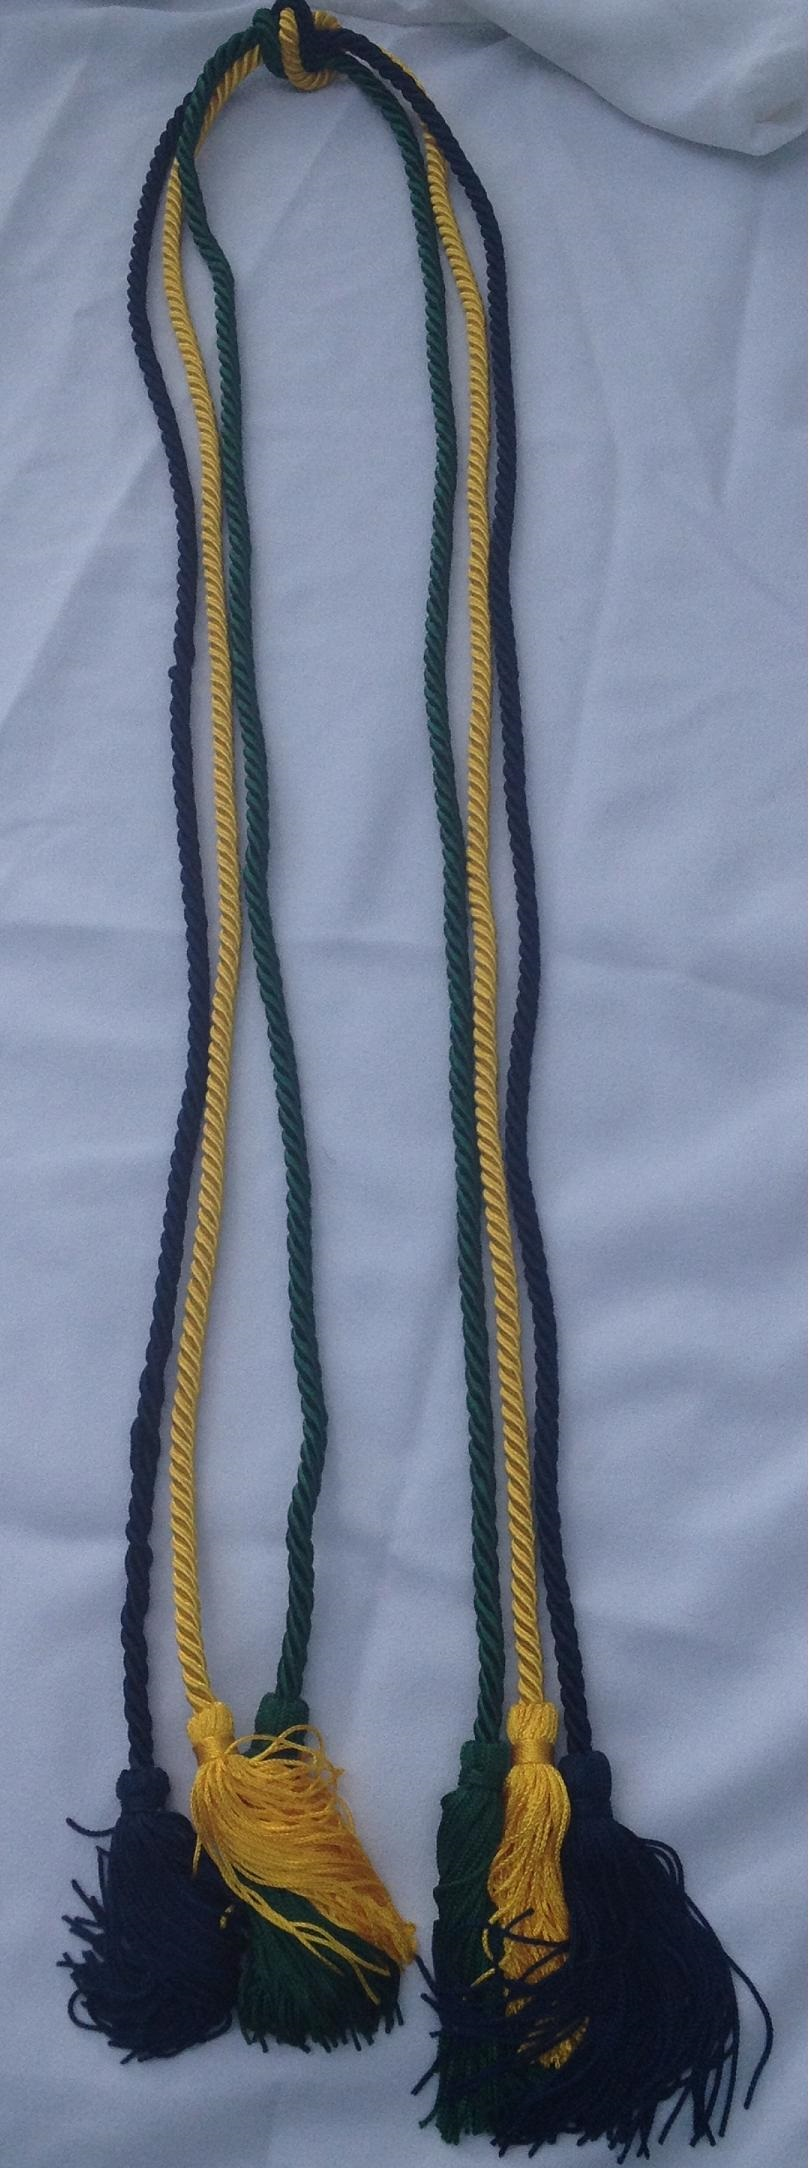 Three Separate Honor Cords